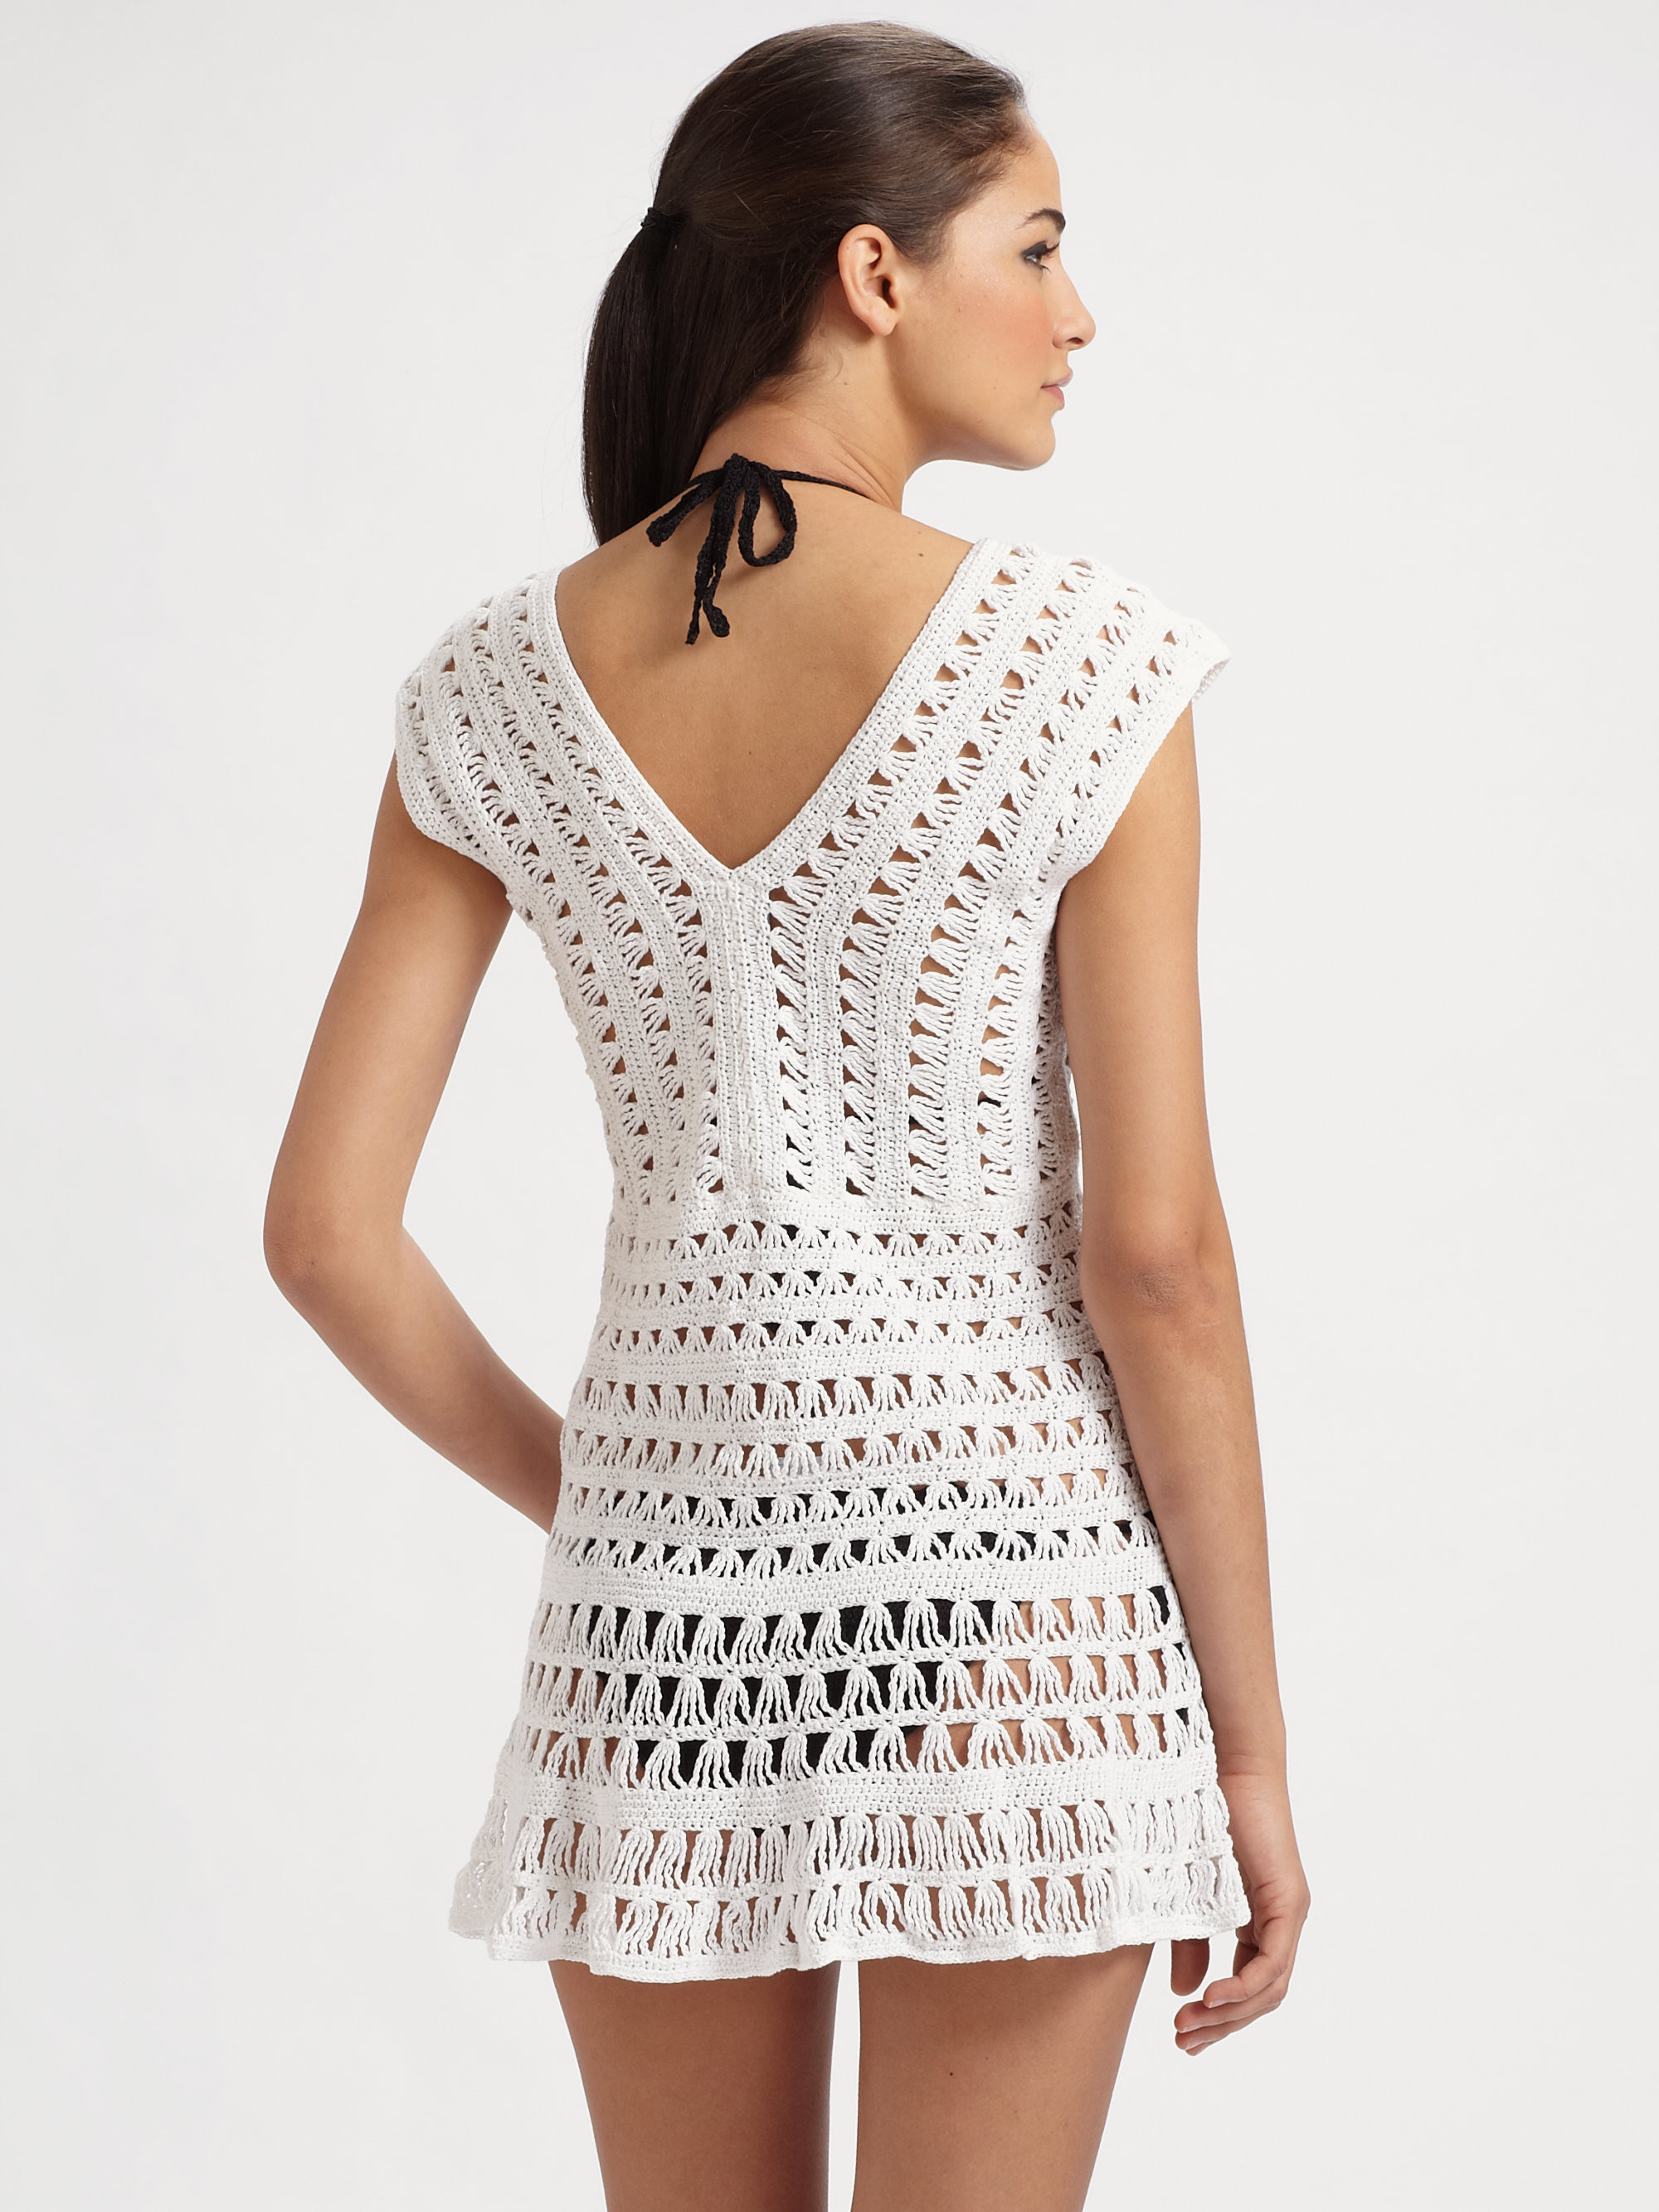 White Crochet Coverup Inspirational Anna Kosturova Marissa Crocheted Coverup In White Of Unique 50 Models White Crochet Coverup